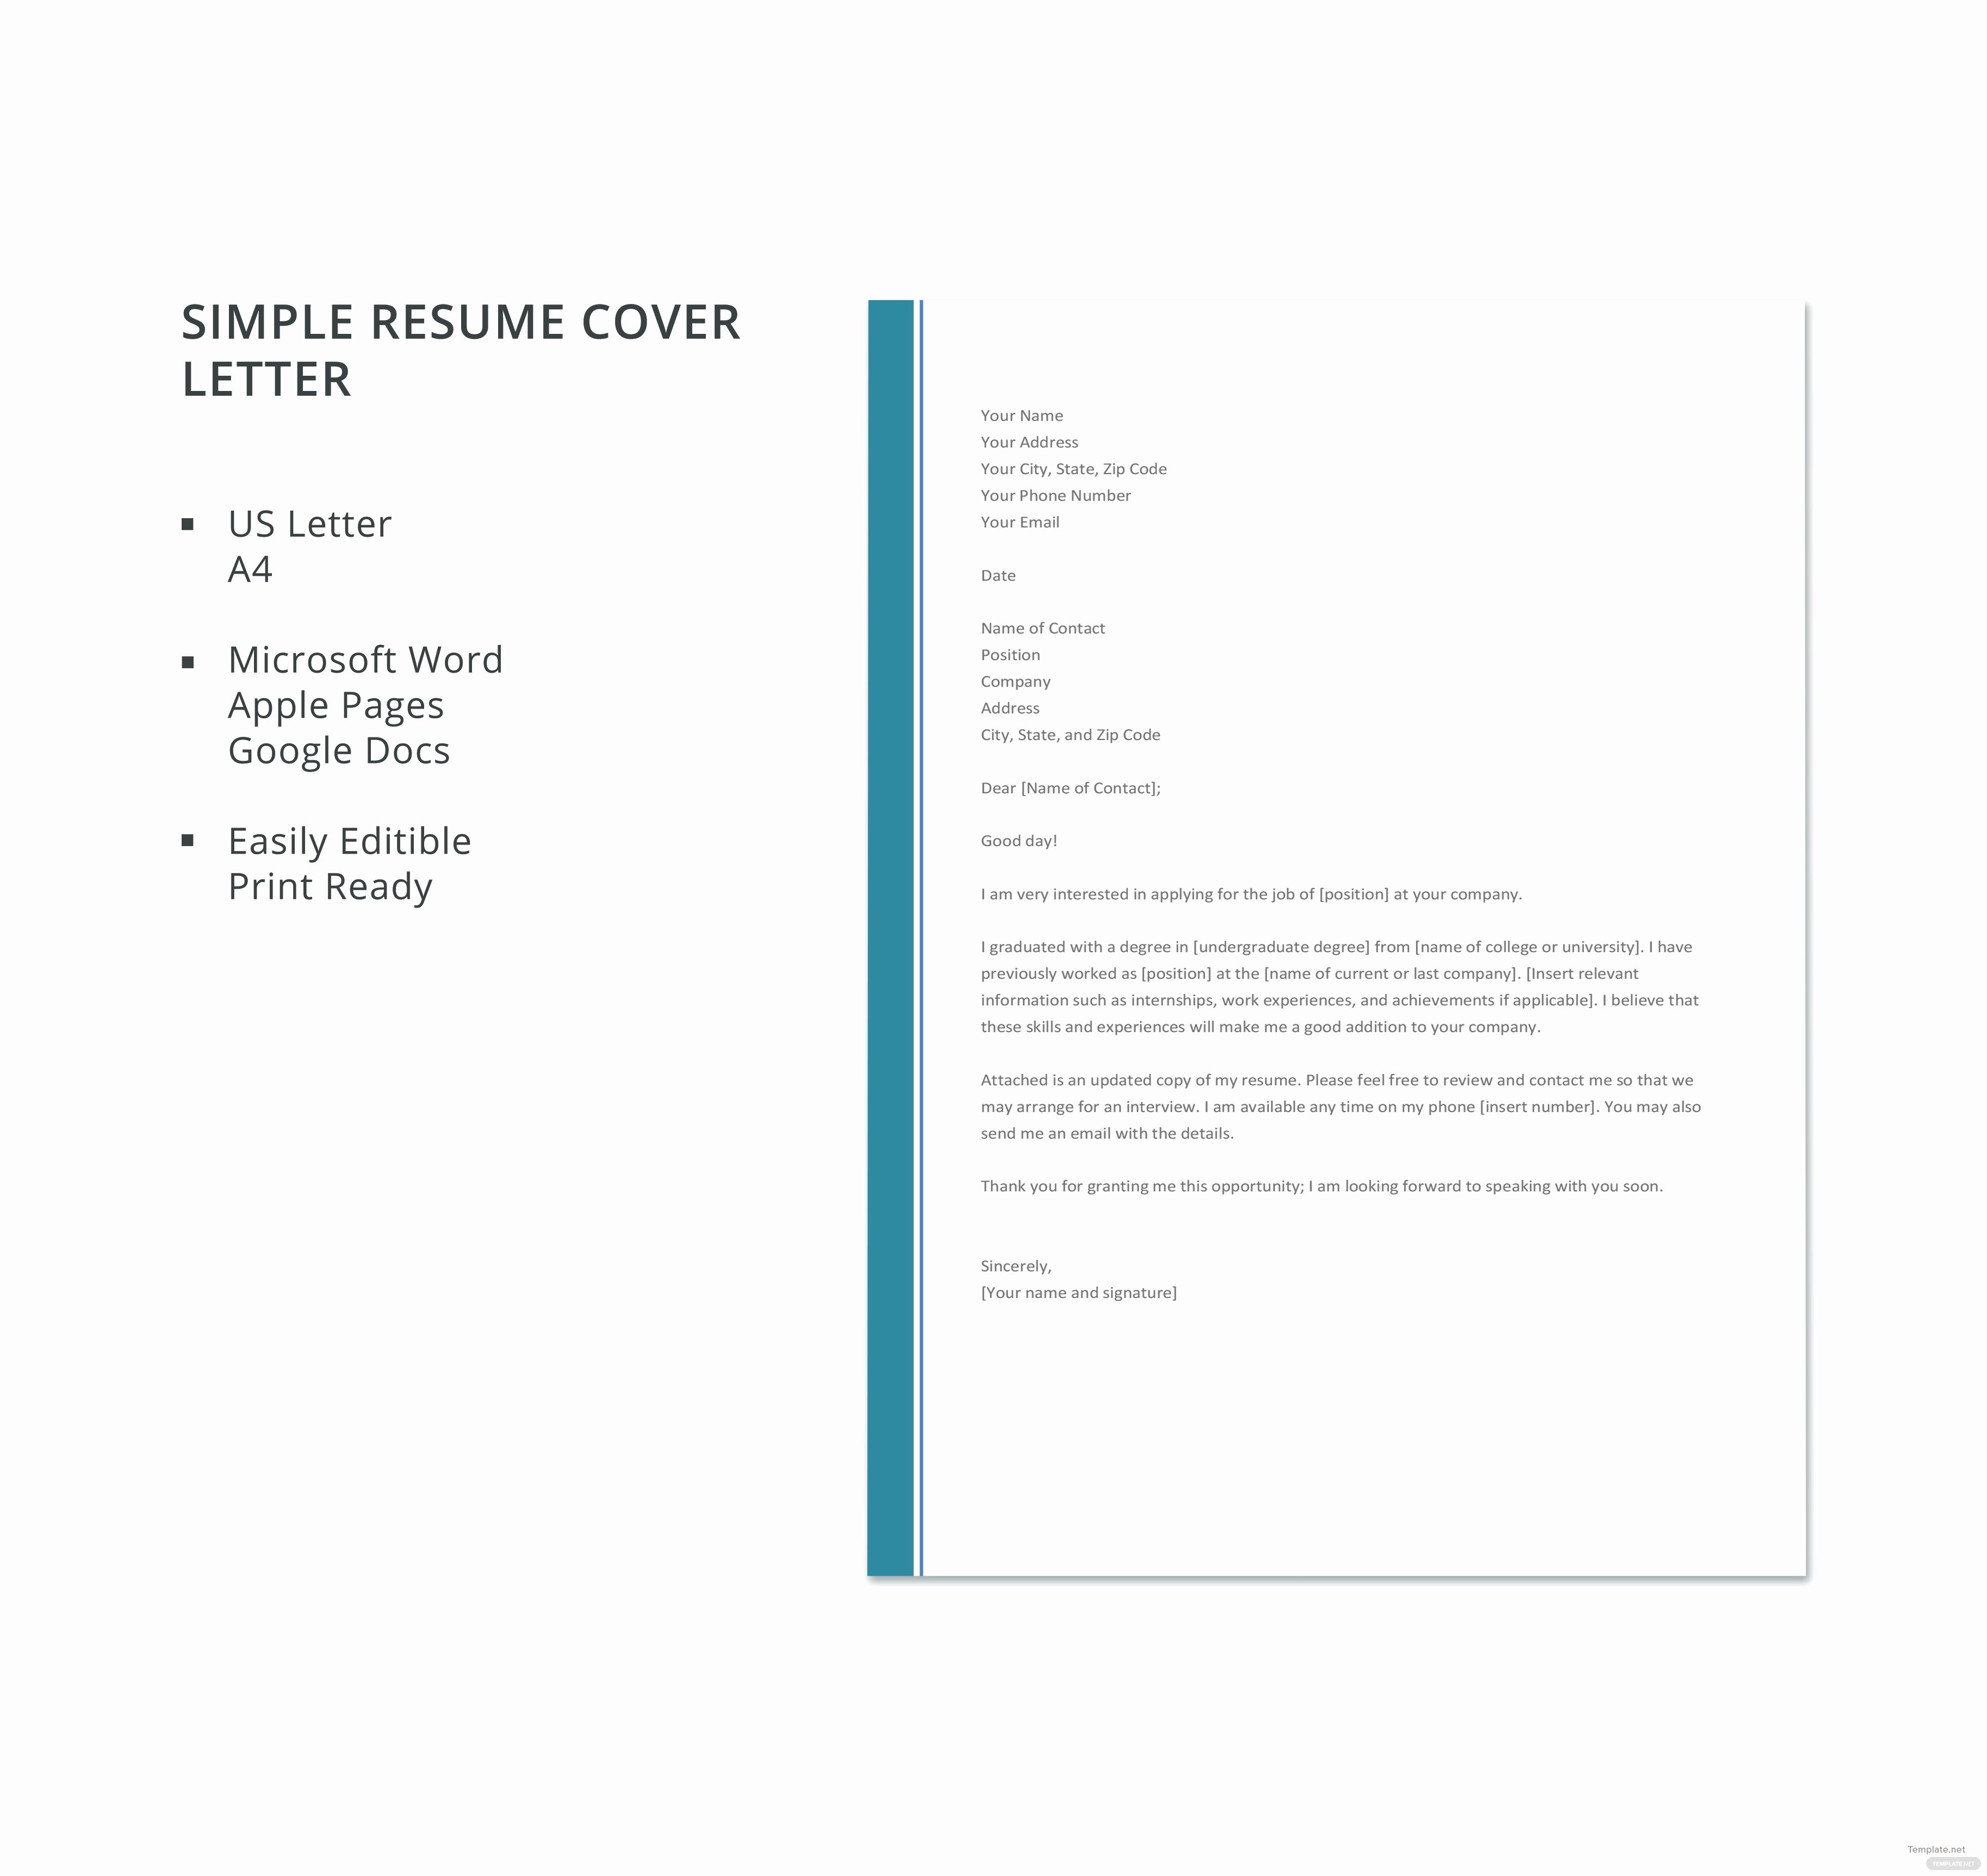 Free Simple Resume Cover Letter Template In Microsoft Word